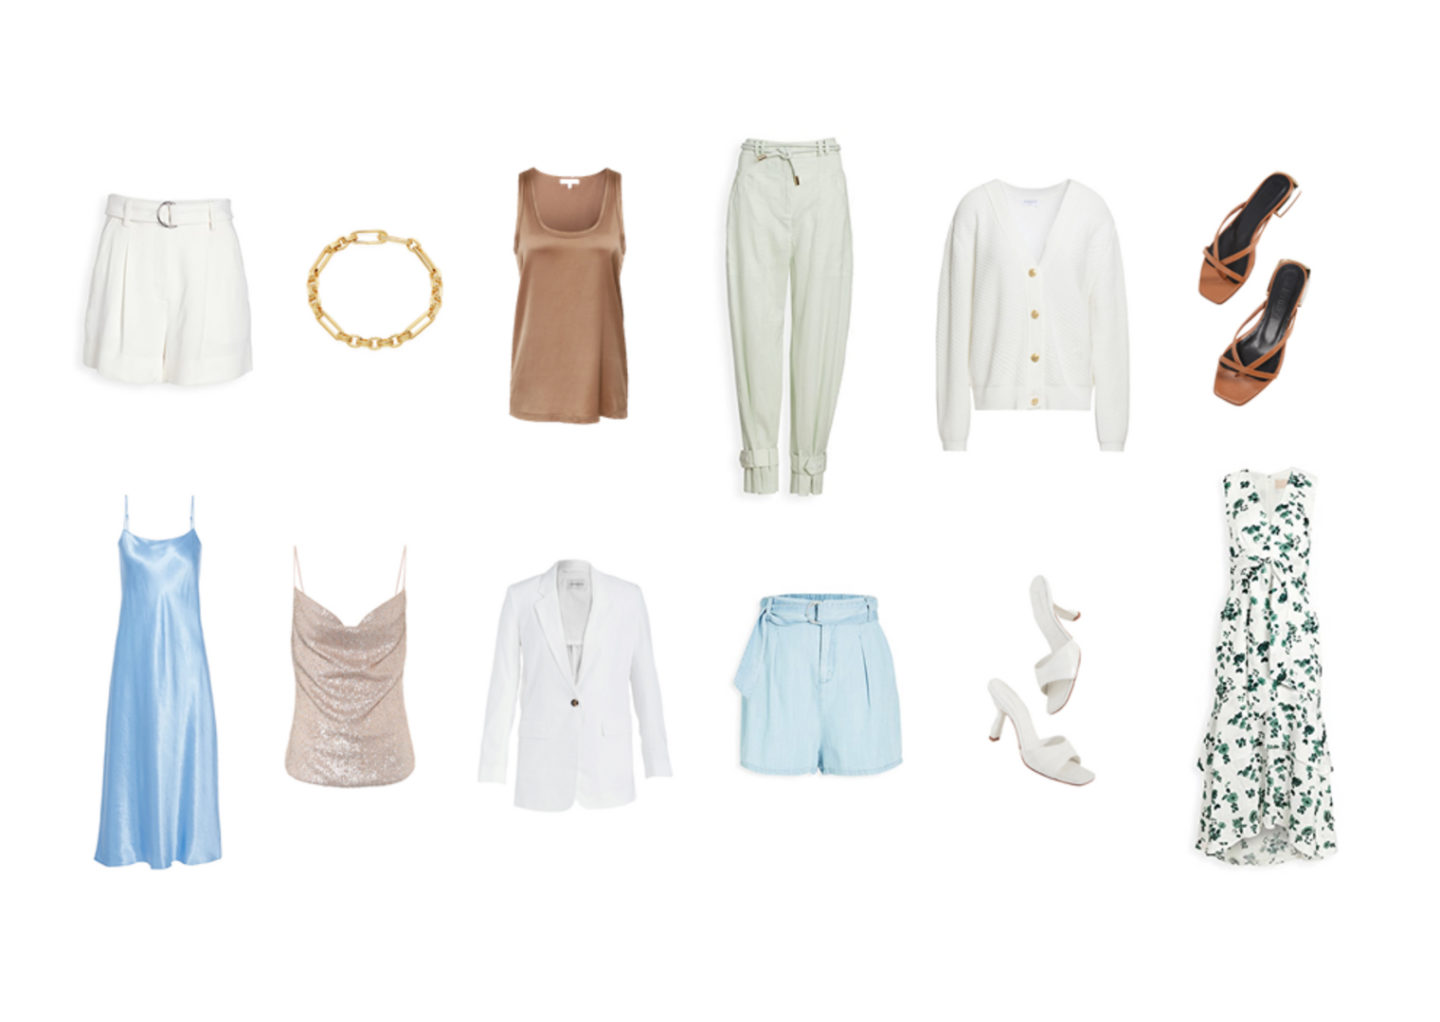 Summer capsule collection buys